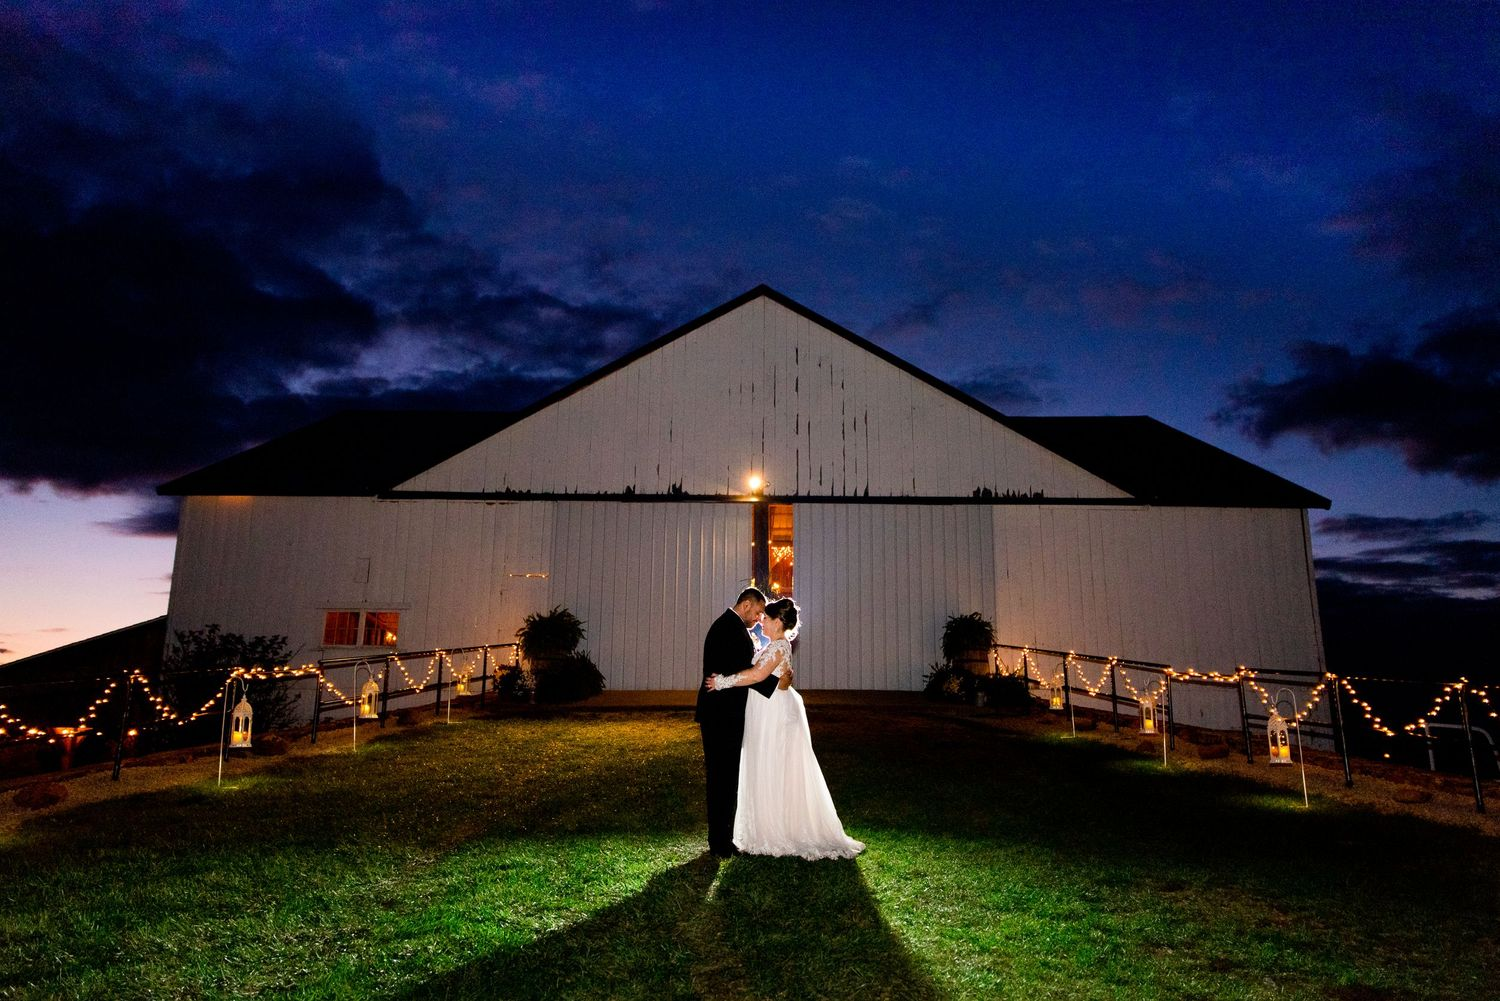 newlywed couple standing with faces together under a dark blue sky at night